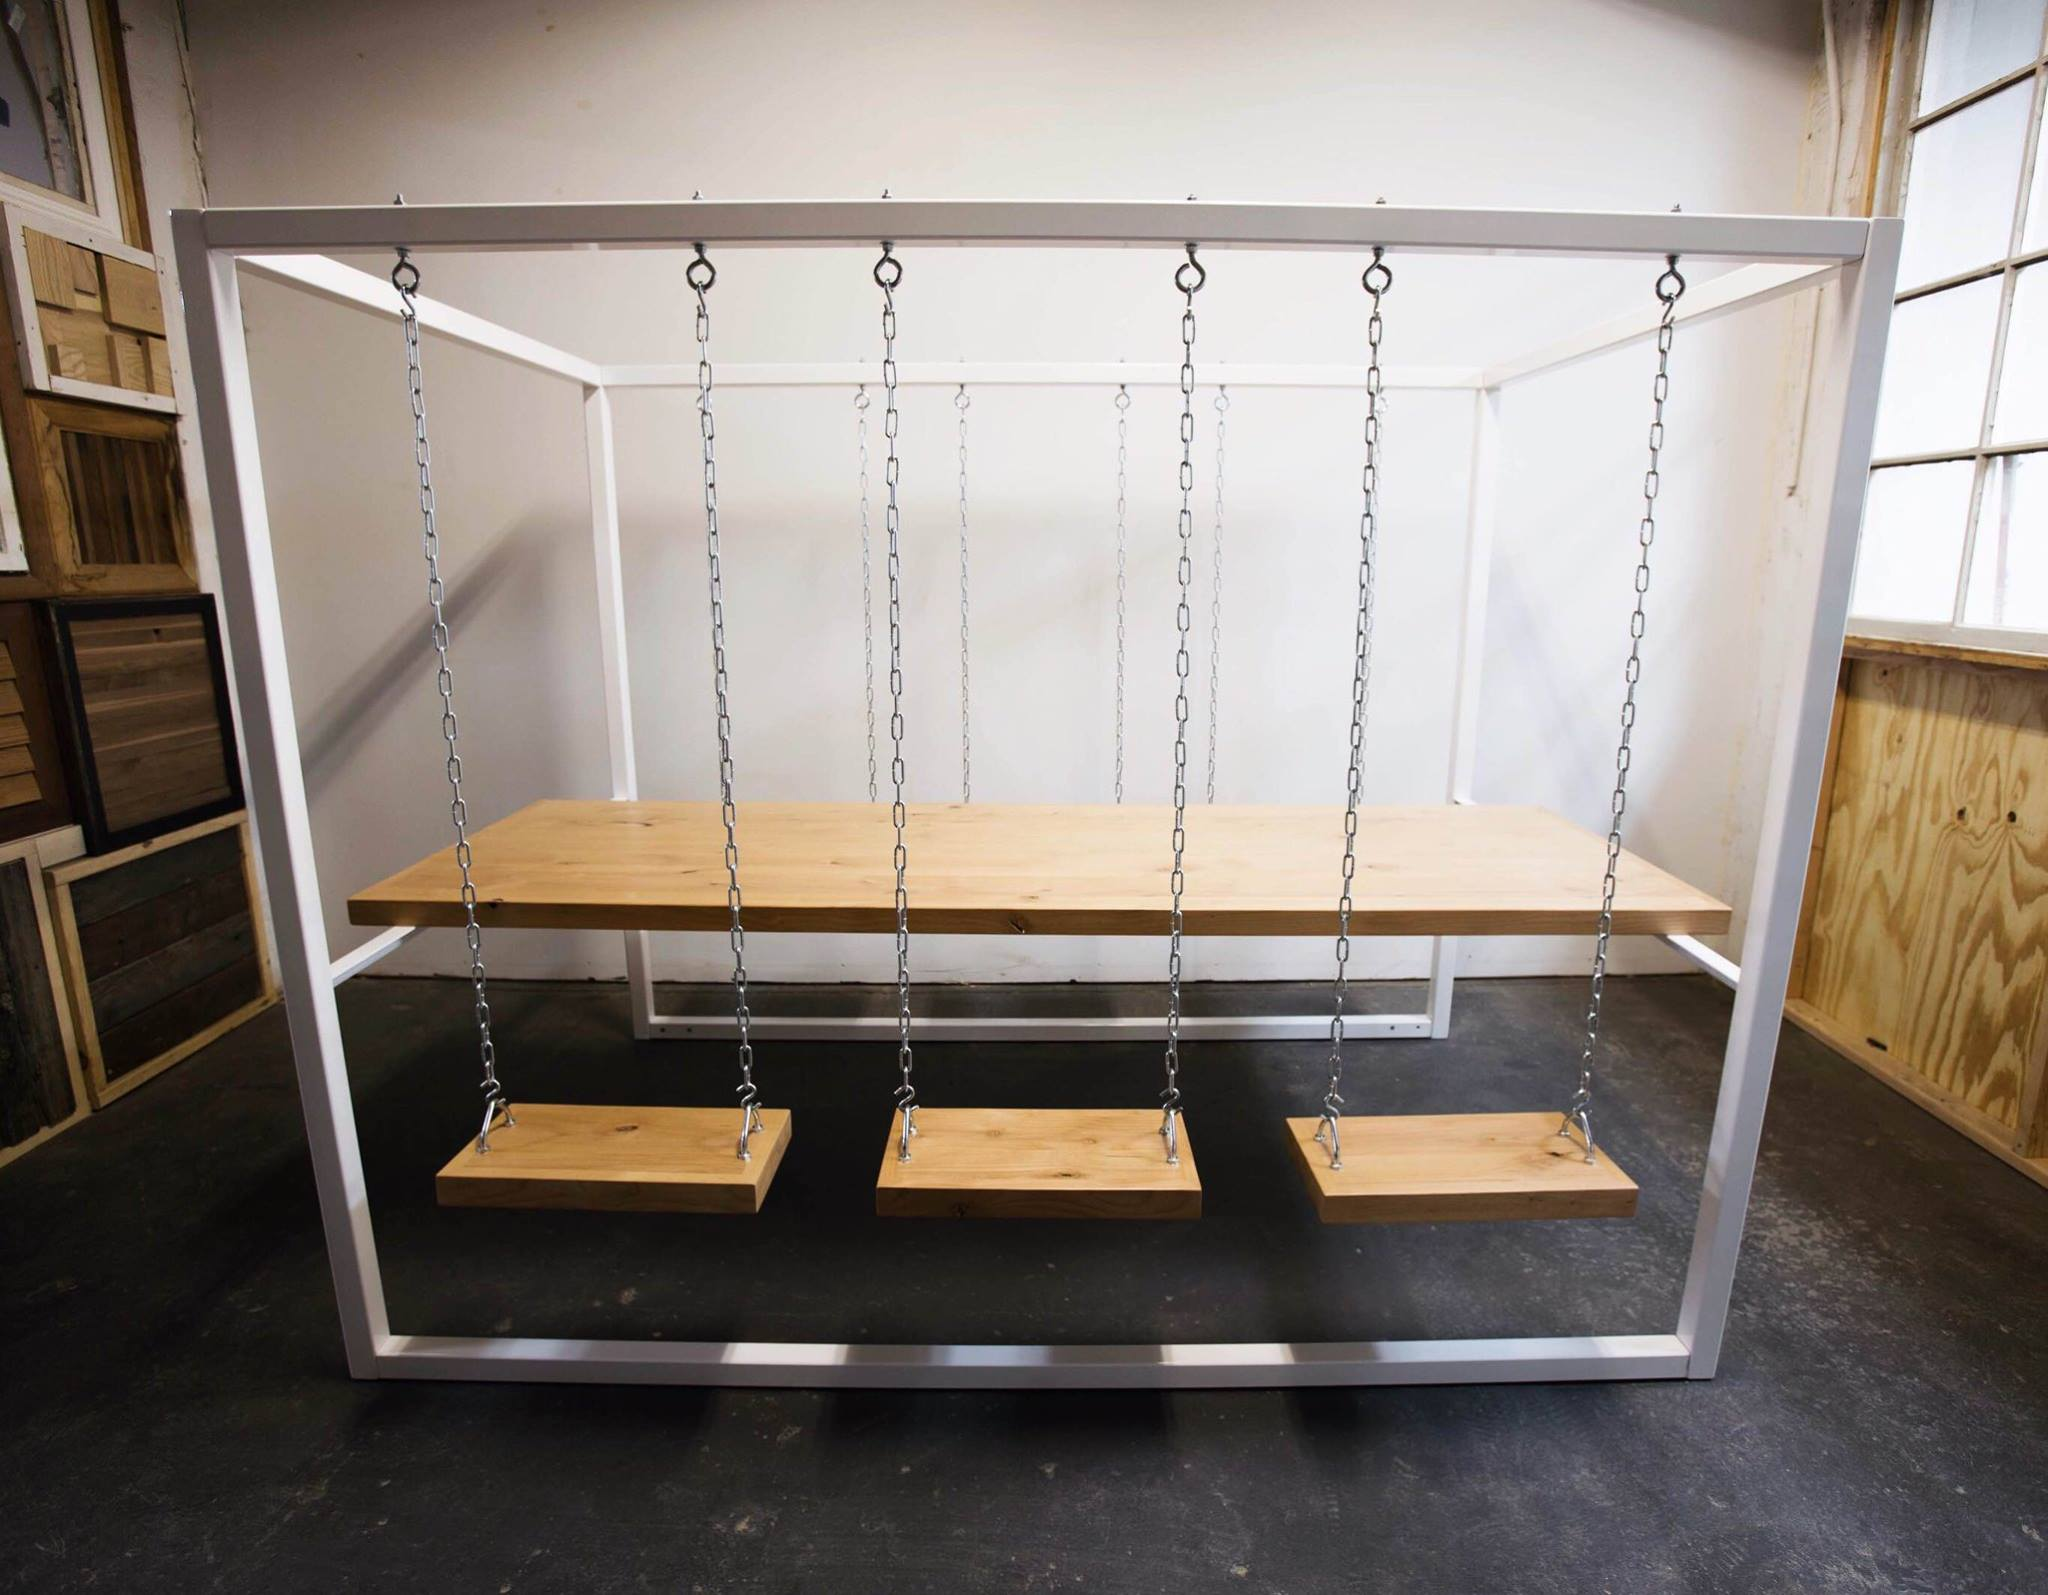 A swingset table designed by Hanisch. (Facebook)